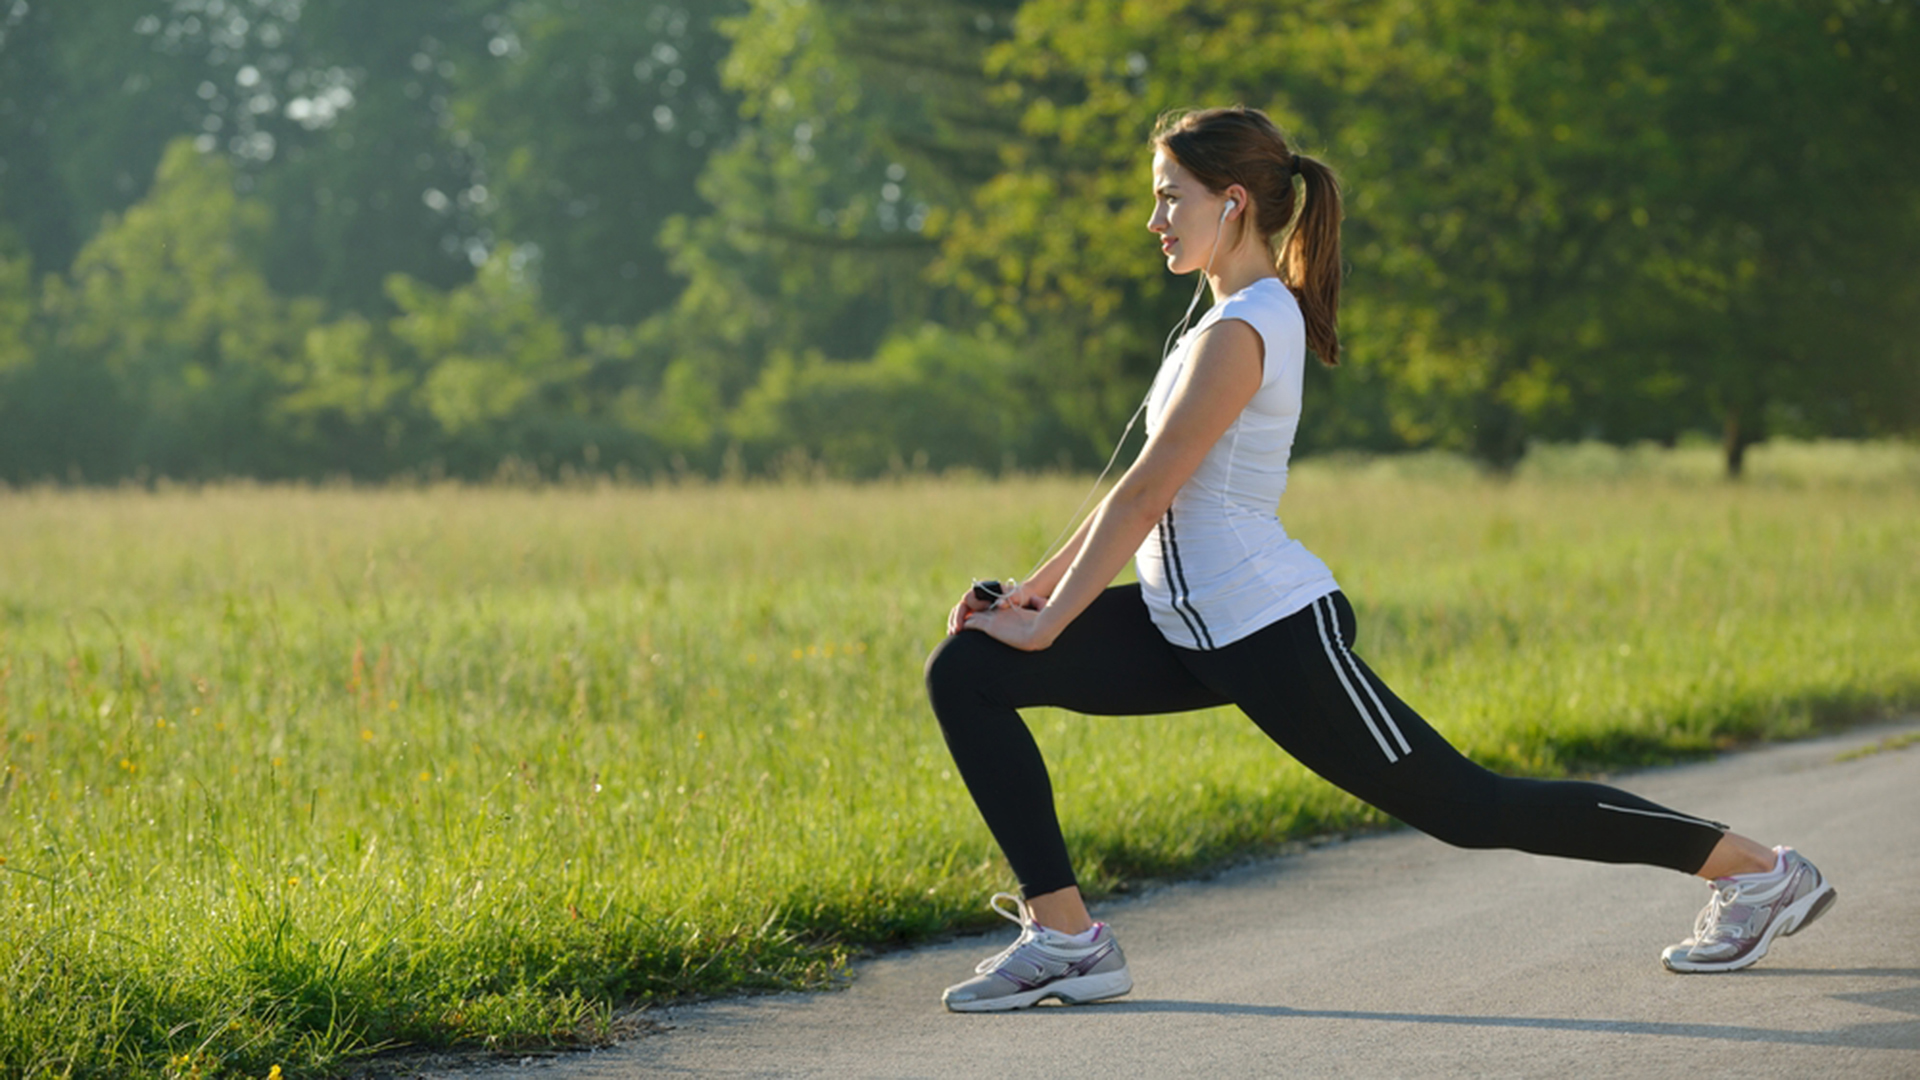 Exercises and Workouts - How Does Cool Weather Impact Your Workout Performance?